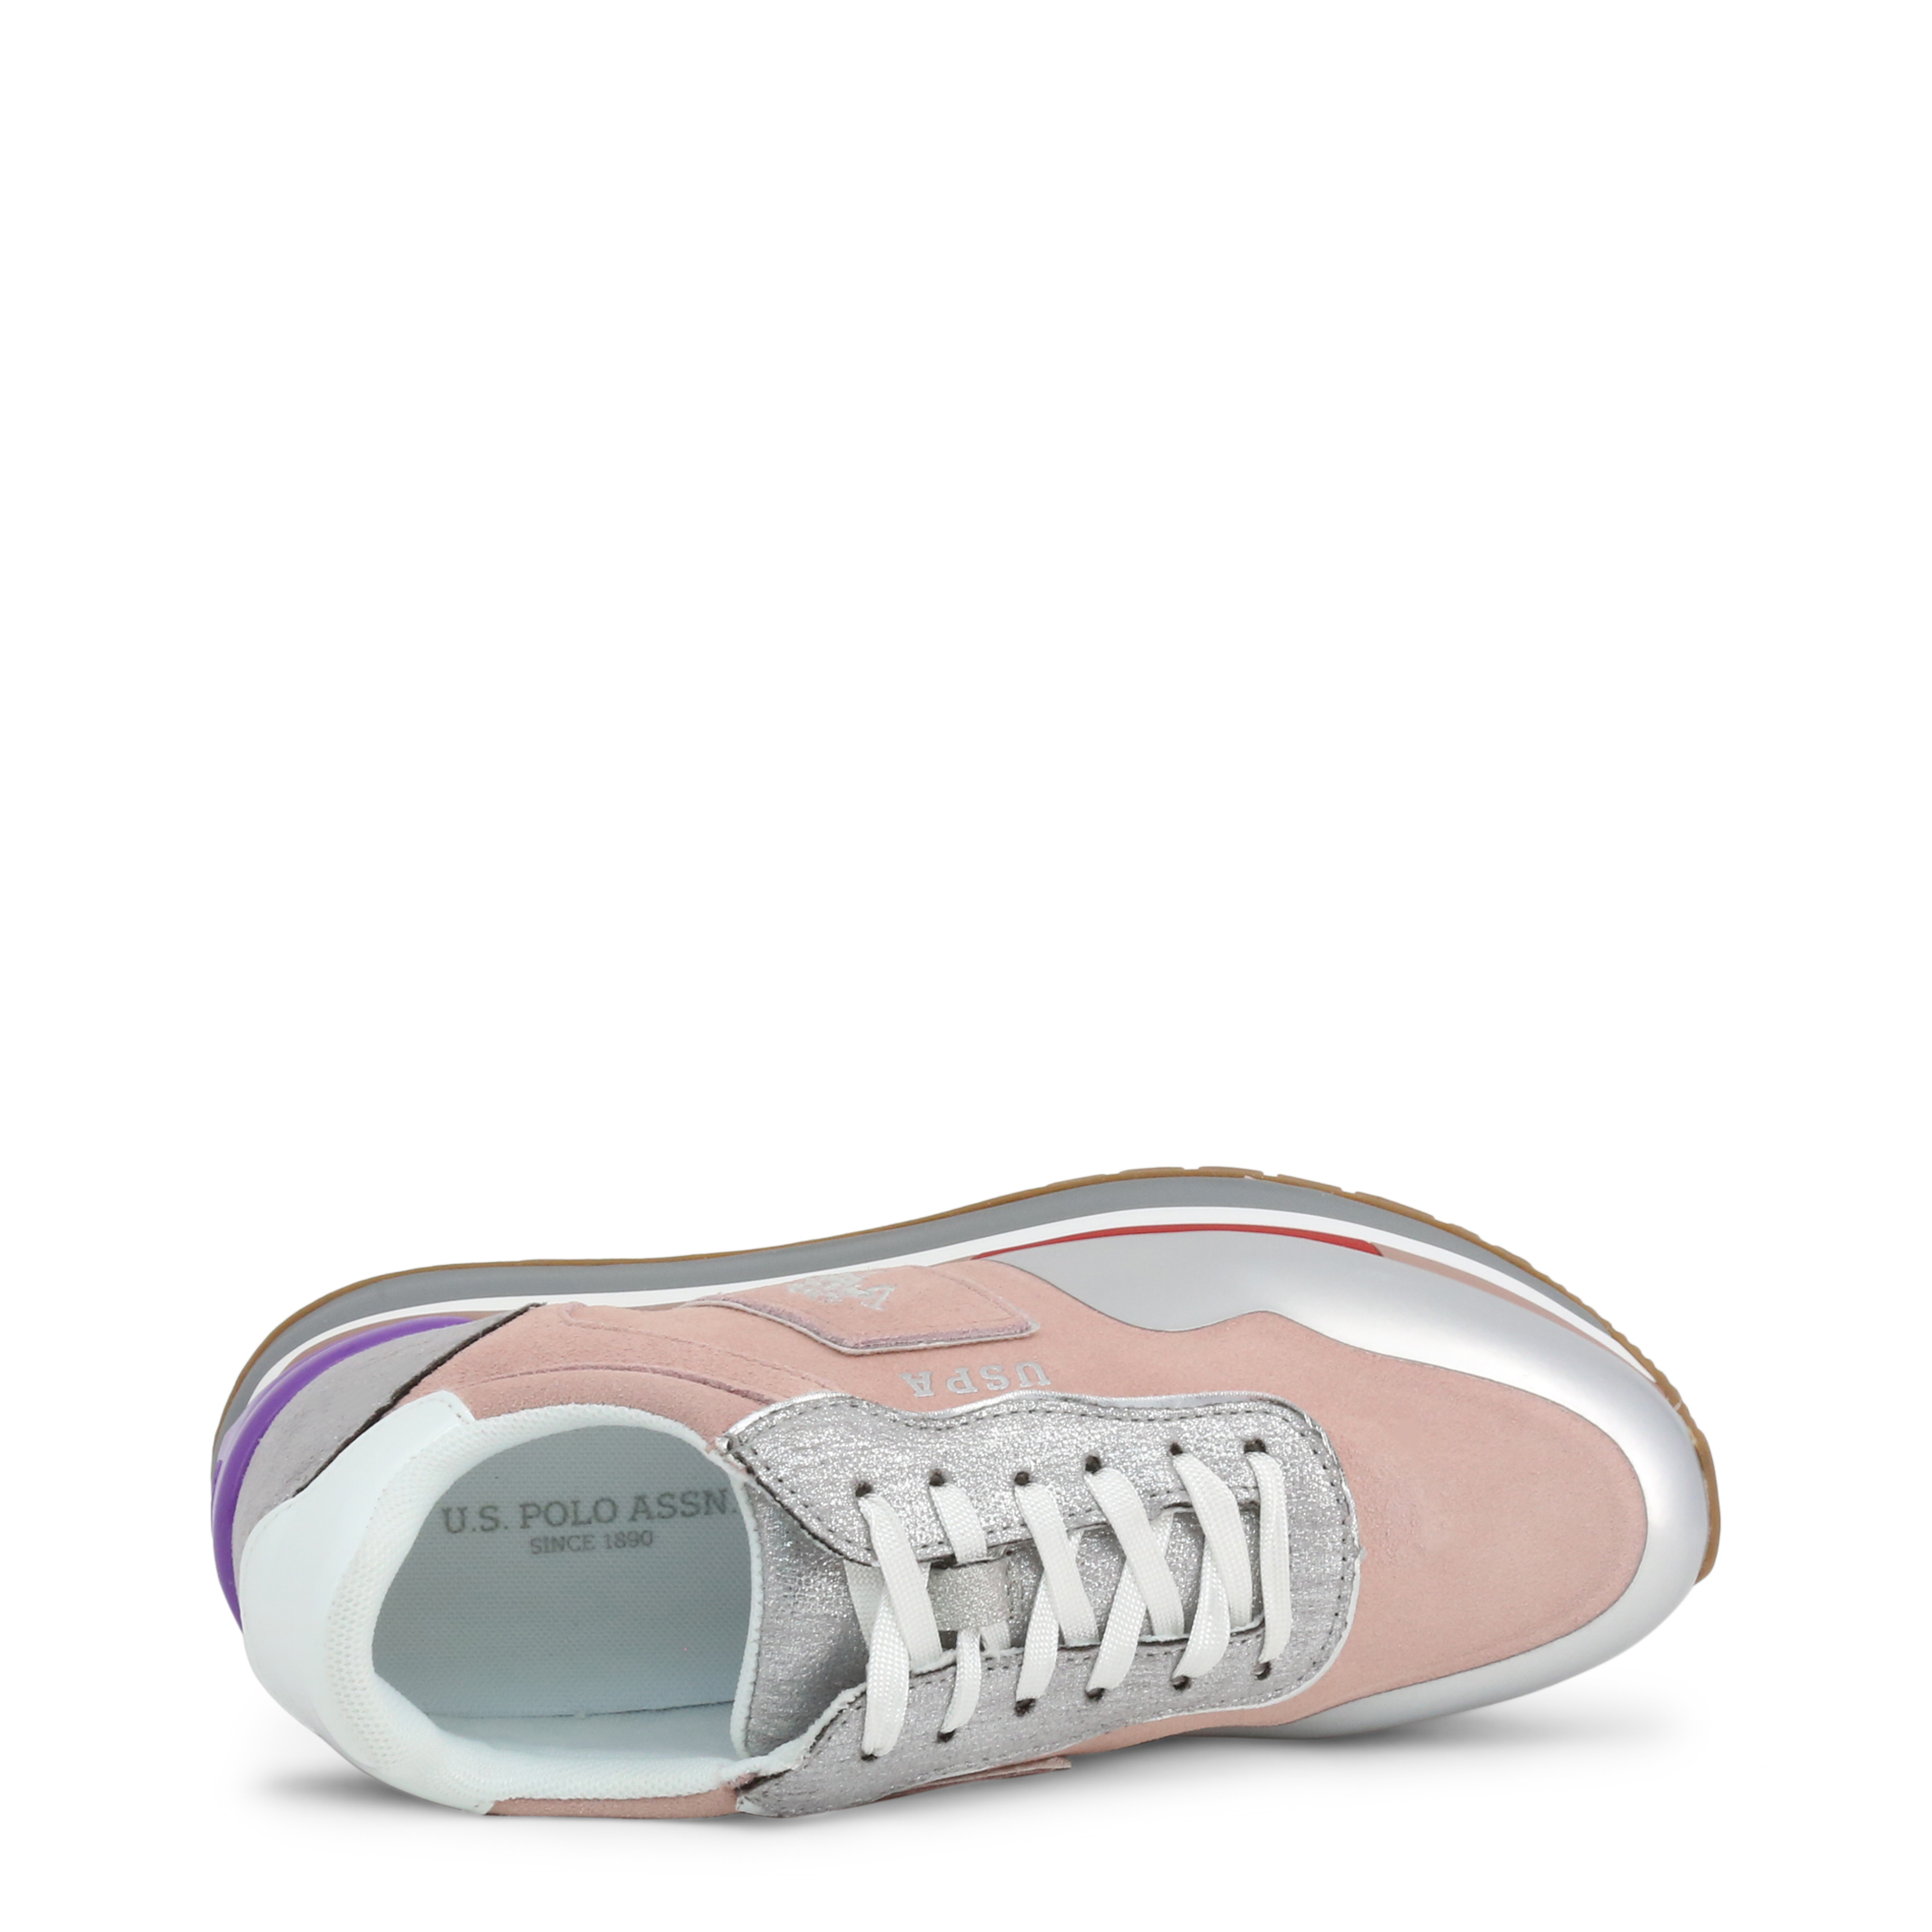 Baskets / Sneakers  U.S. Polo Assn. CHER4195S0_SY1_PINK-SIL pink